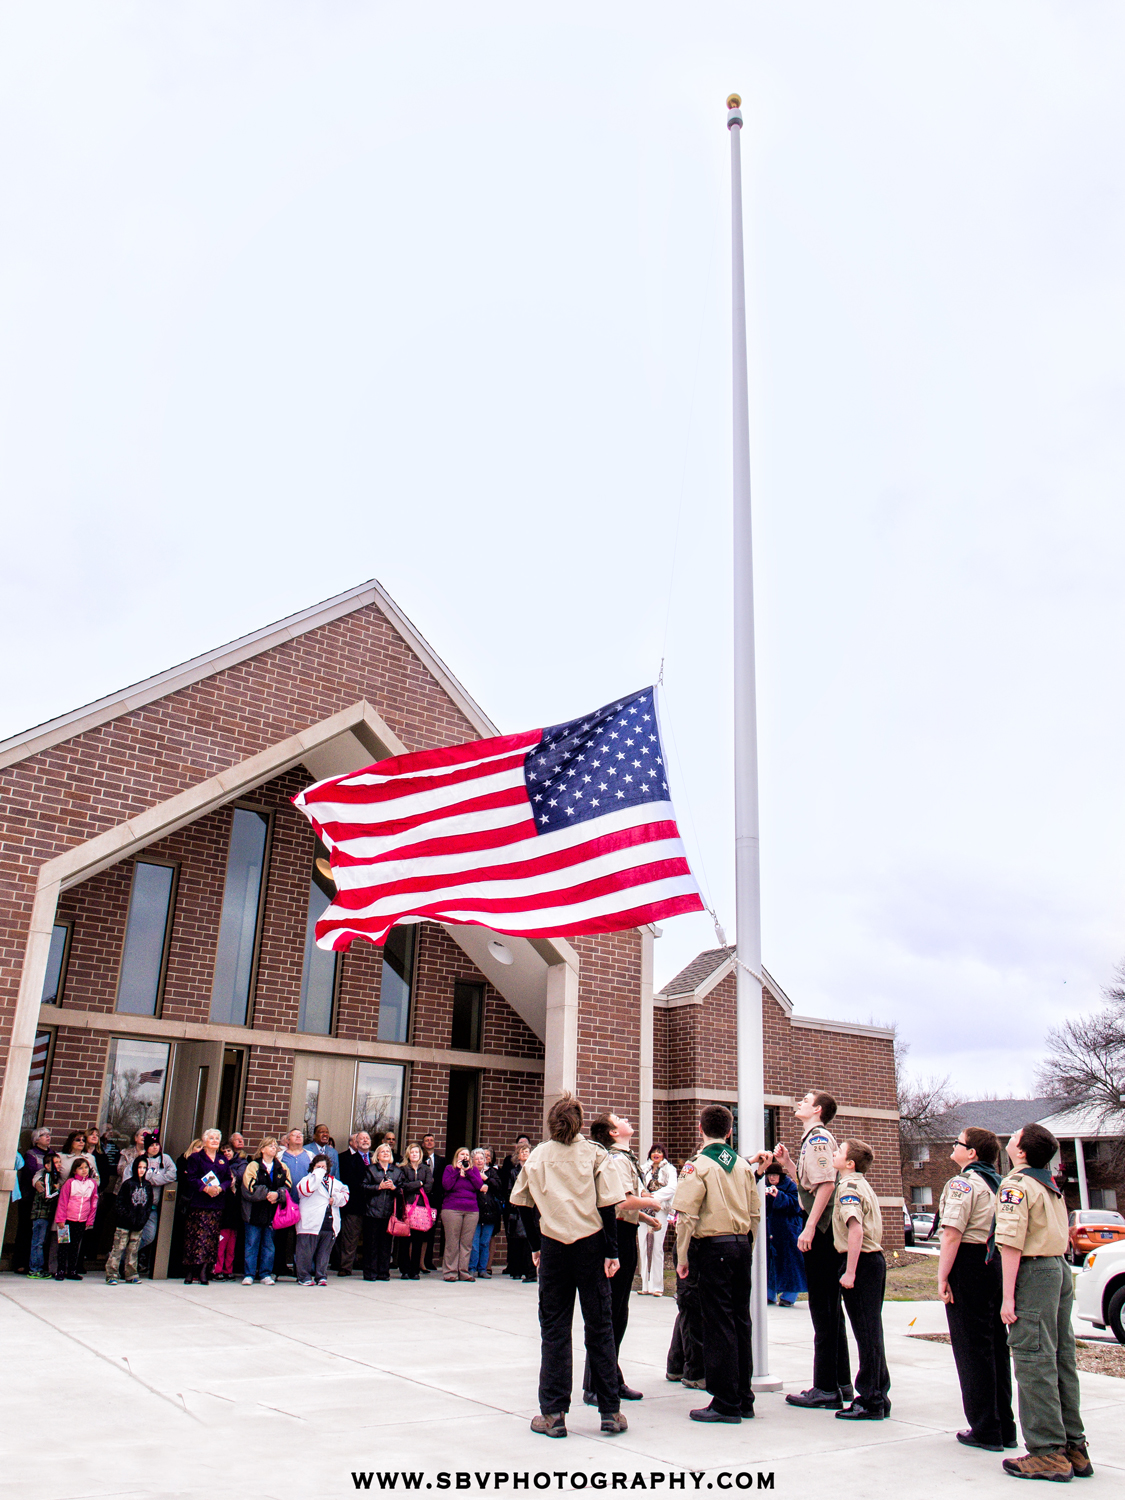 A Northwest Indiana boy scout troop raises the American flag at the grand opening of the new Griffith Library.